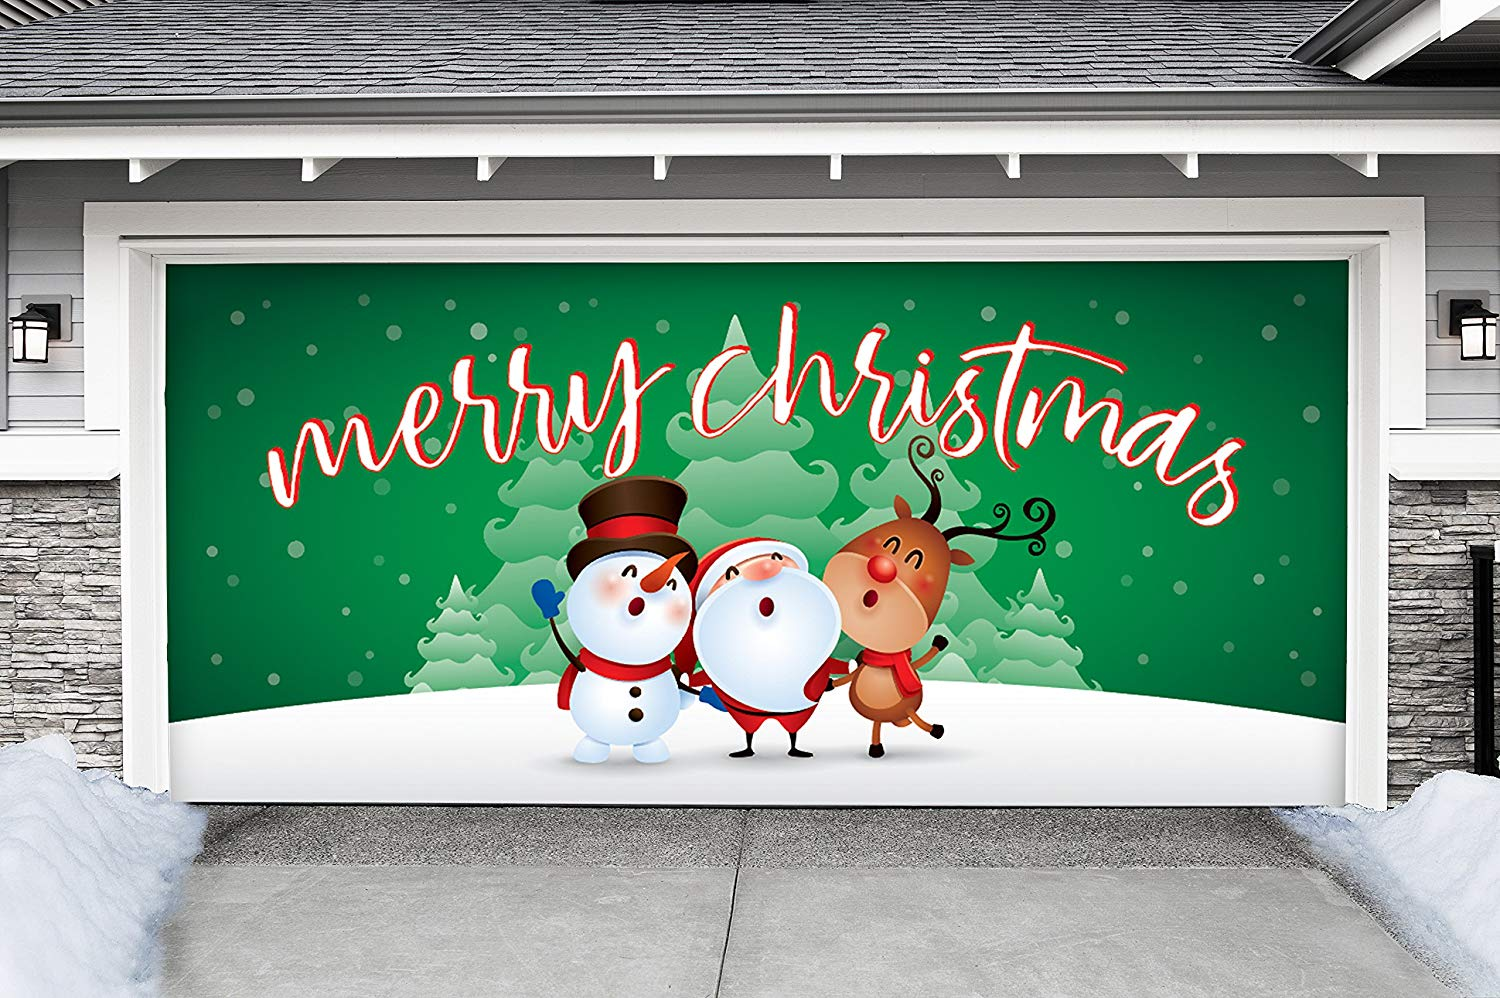 Victory Corps Outdoor Christmas Holiday Garage Door Banner Cover Mural Décoration - Christmas Characters Merry Christmas Winter - Outdoor Christmas Holiday Garage Door Banner Décor Sign 7'x16'